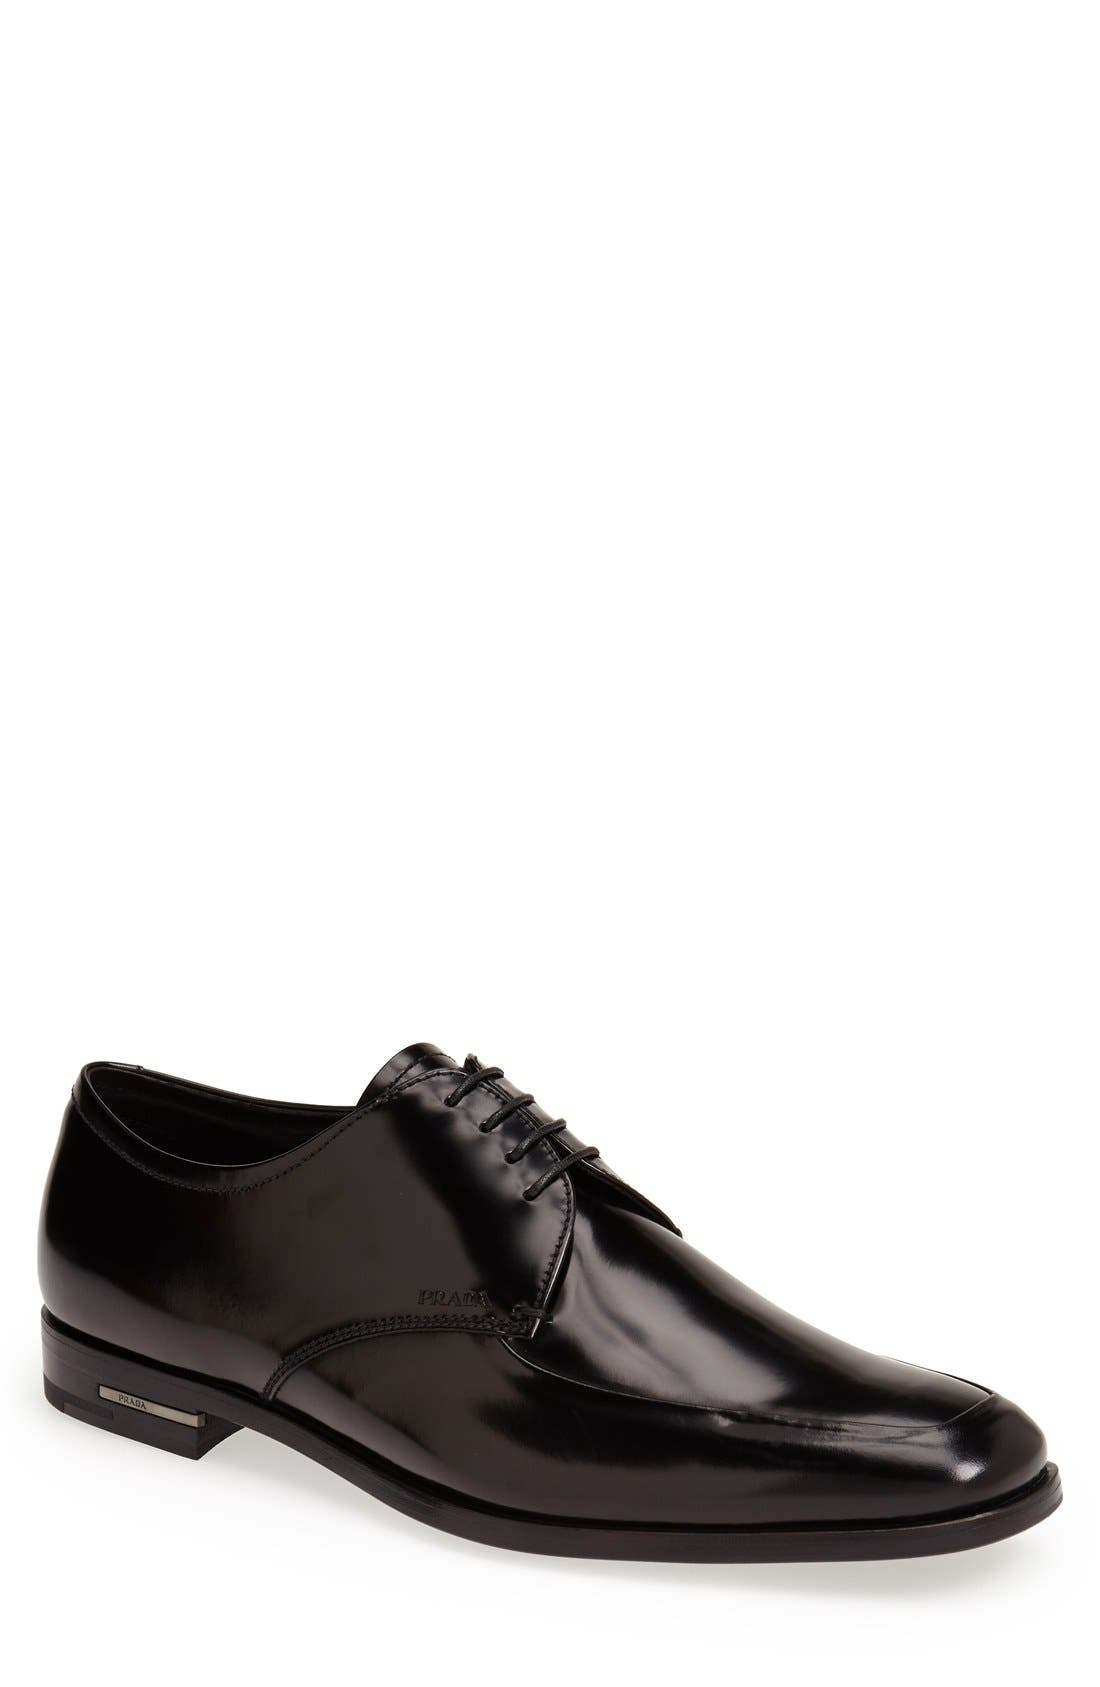 Alternate Image 1 Selected - Prada High Shine Apron Toe Oxford (Men)